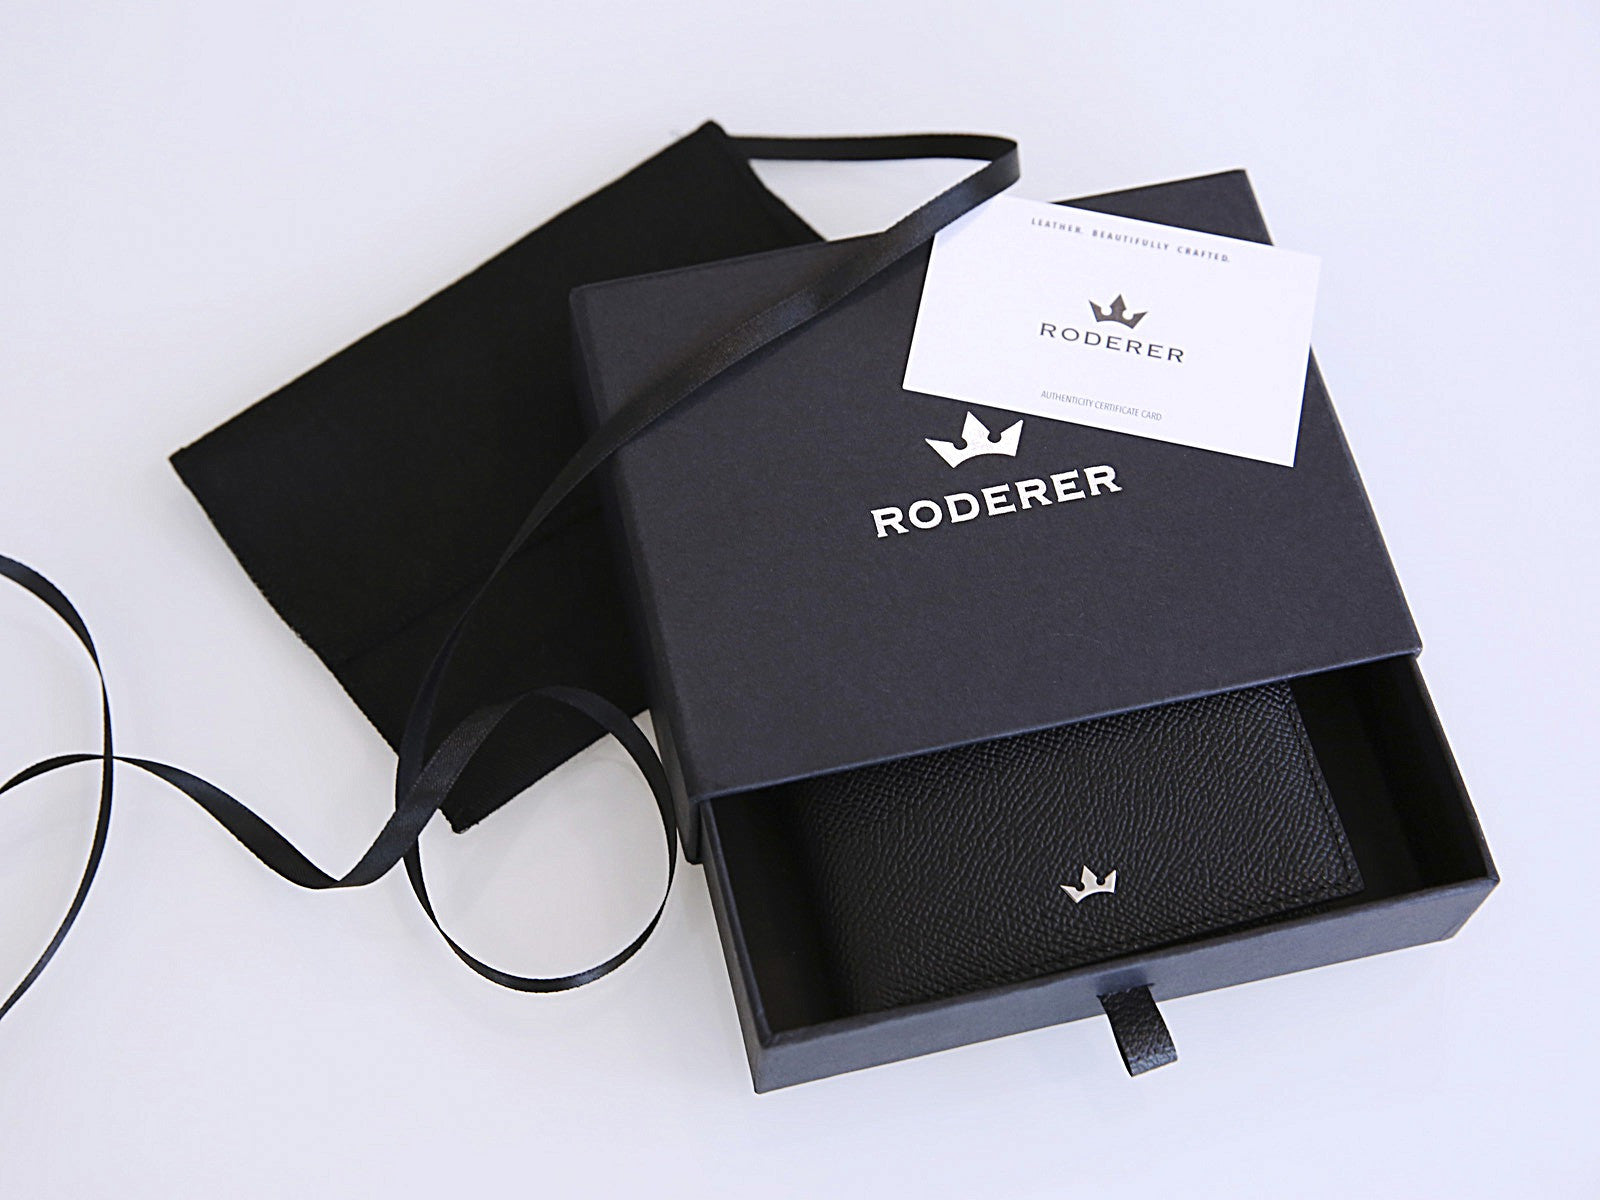 Roderer Trophy Bifold 6 Card RFID Navy Blue Money Clip Wallet Packaging